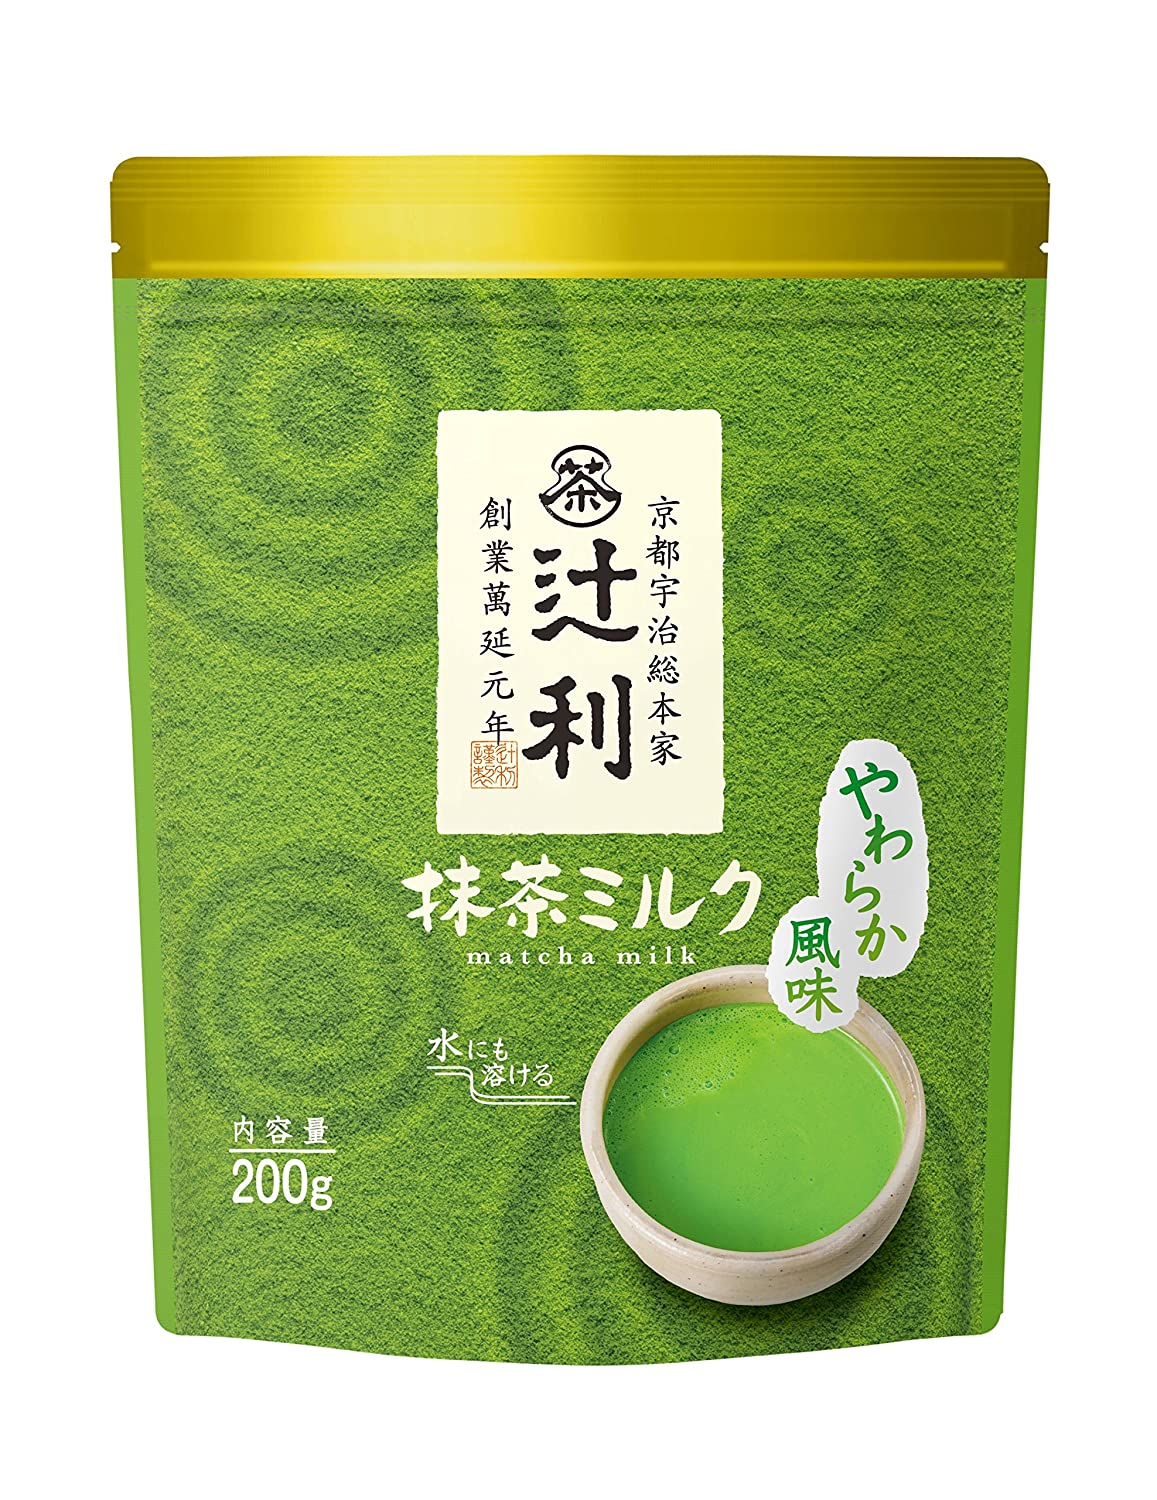 Kataoka - Matcha Green Tea Milk 705oz promotion 250g milk oolong tea high quality tiguanyin green tea taiwan jin xuan milk oolong health care milk tea